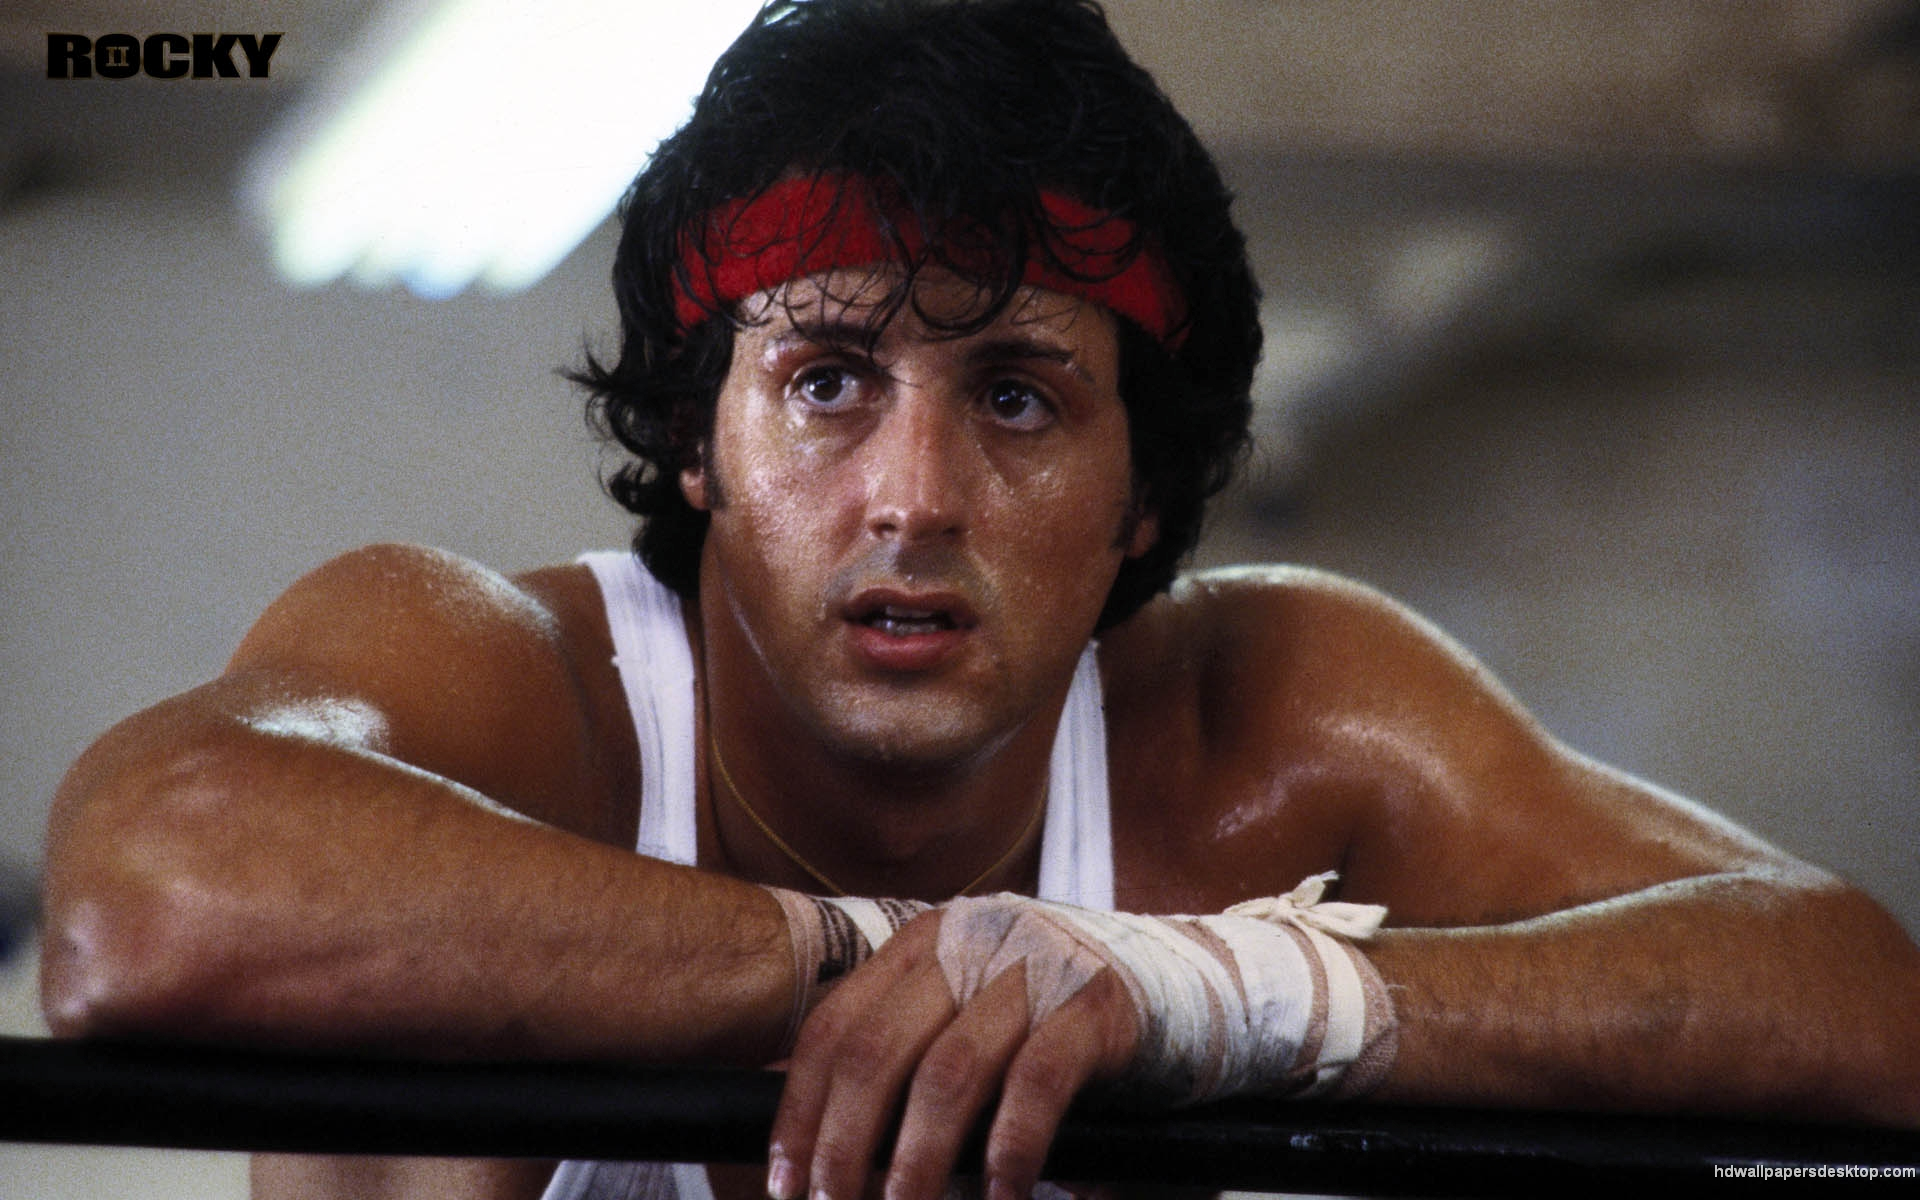 rocky balboa movie mp3 songs free download 320kbps